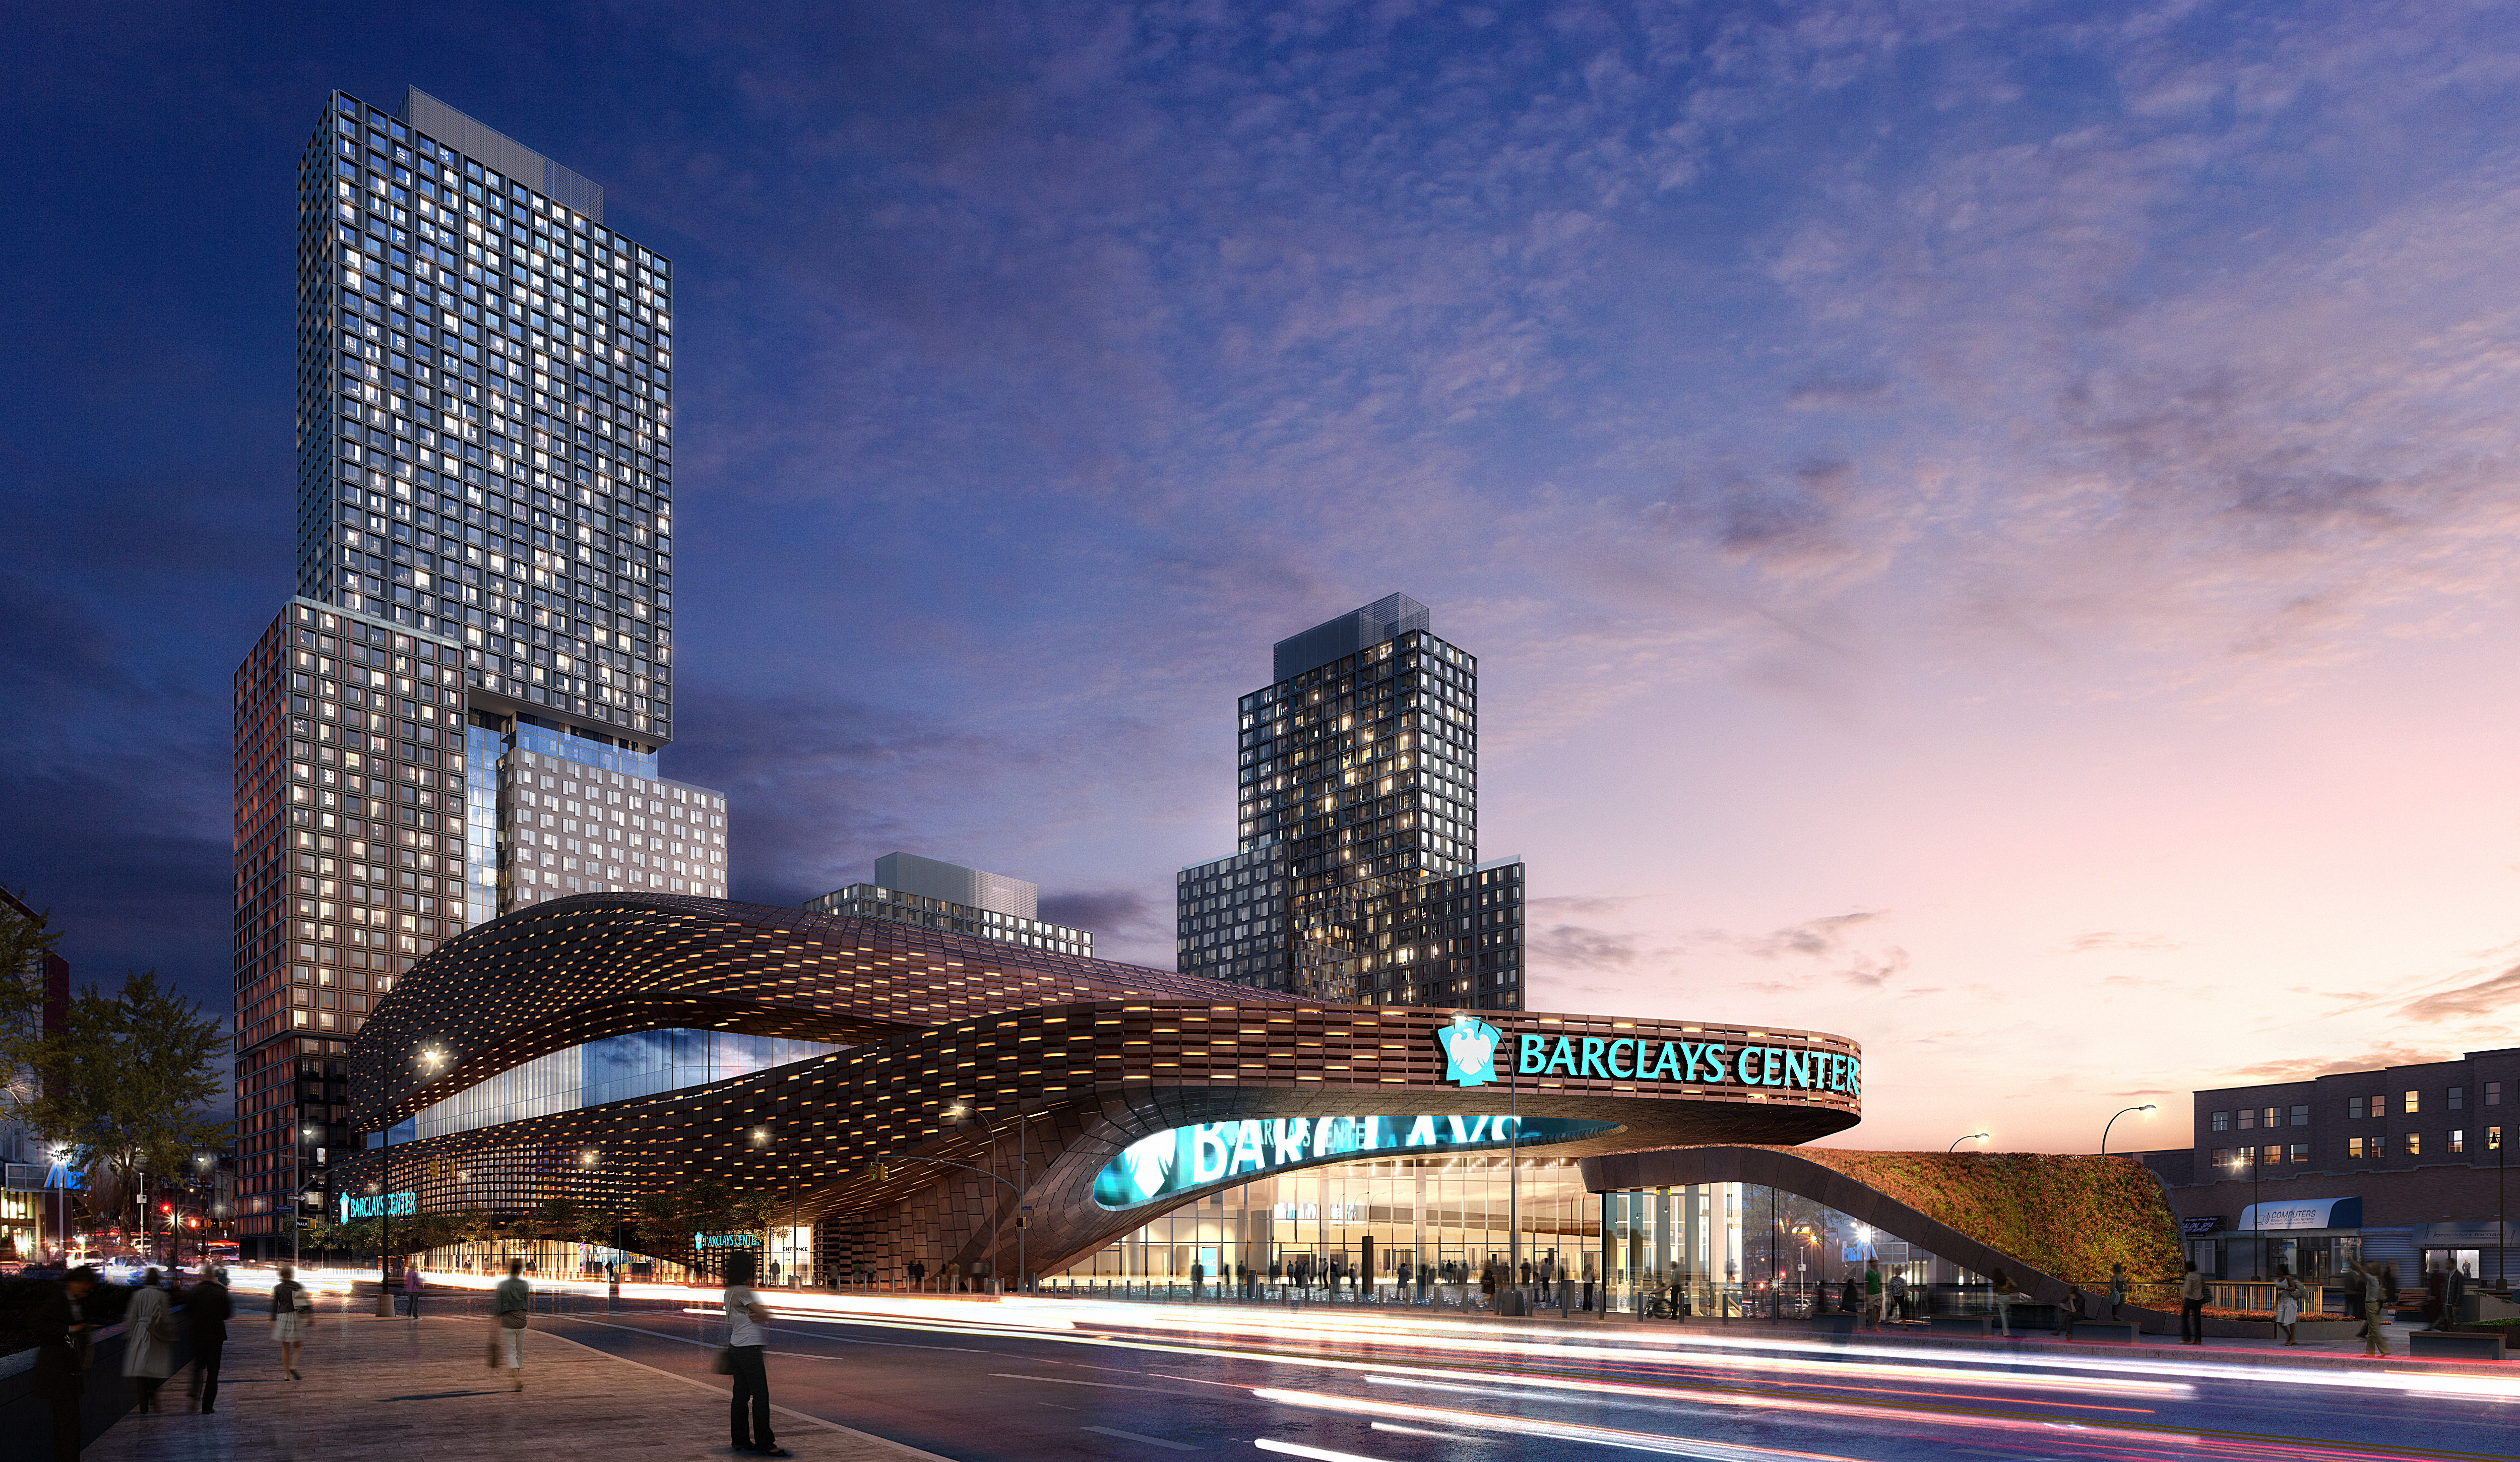 New Barclays Center Implements Cisco Connected Stadium